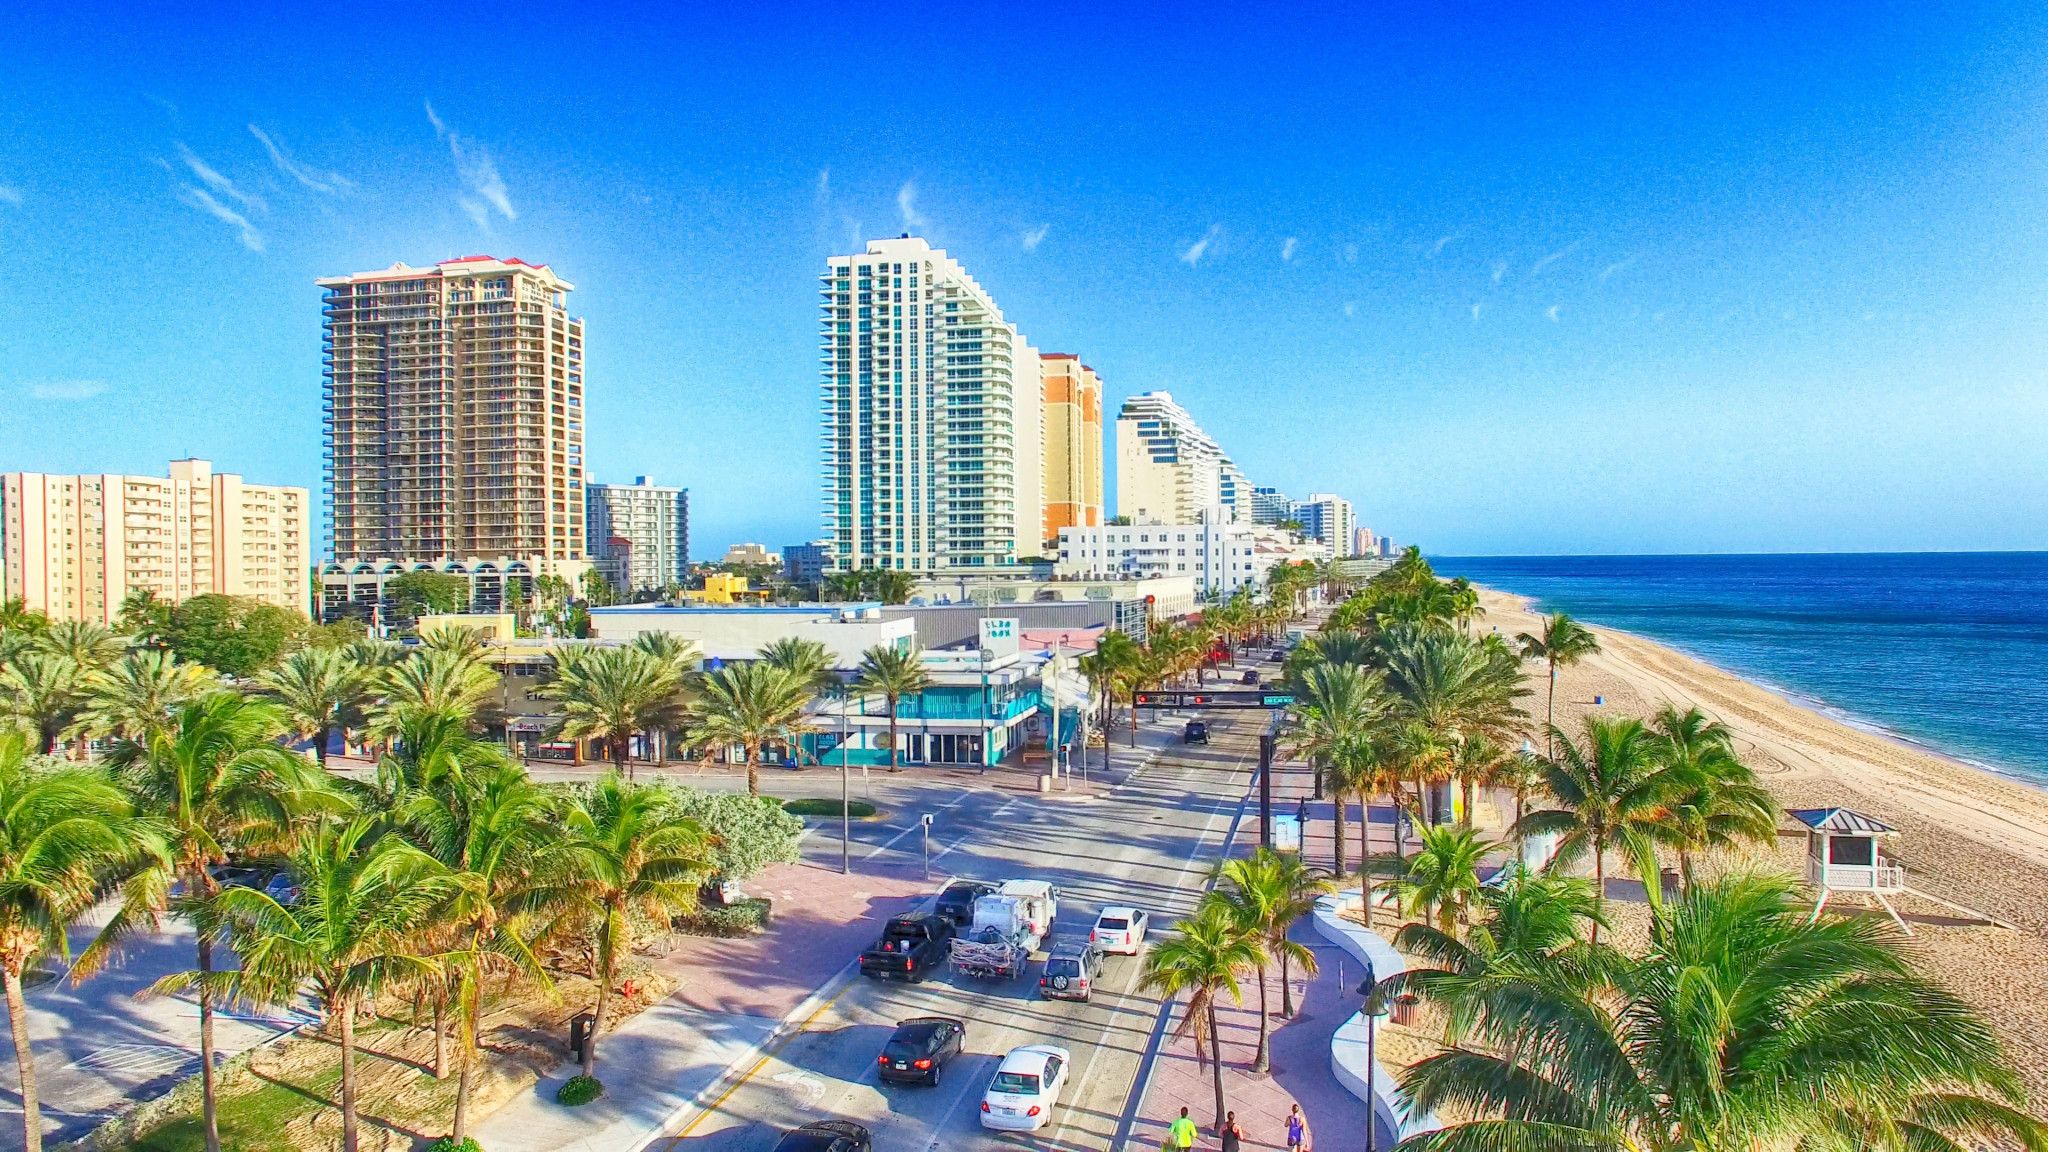 Fort Lauderdale to host first Regional SportAccord Pan America in 2019